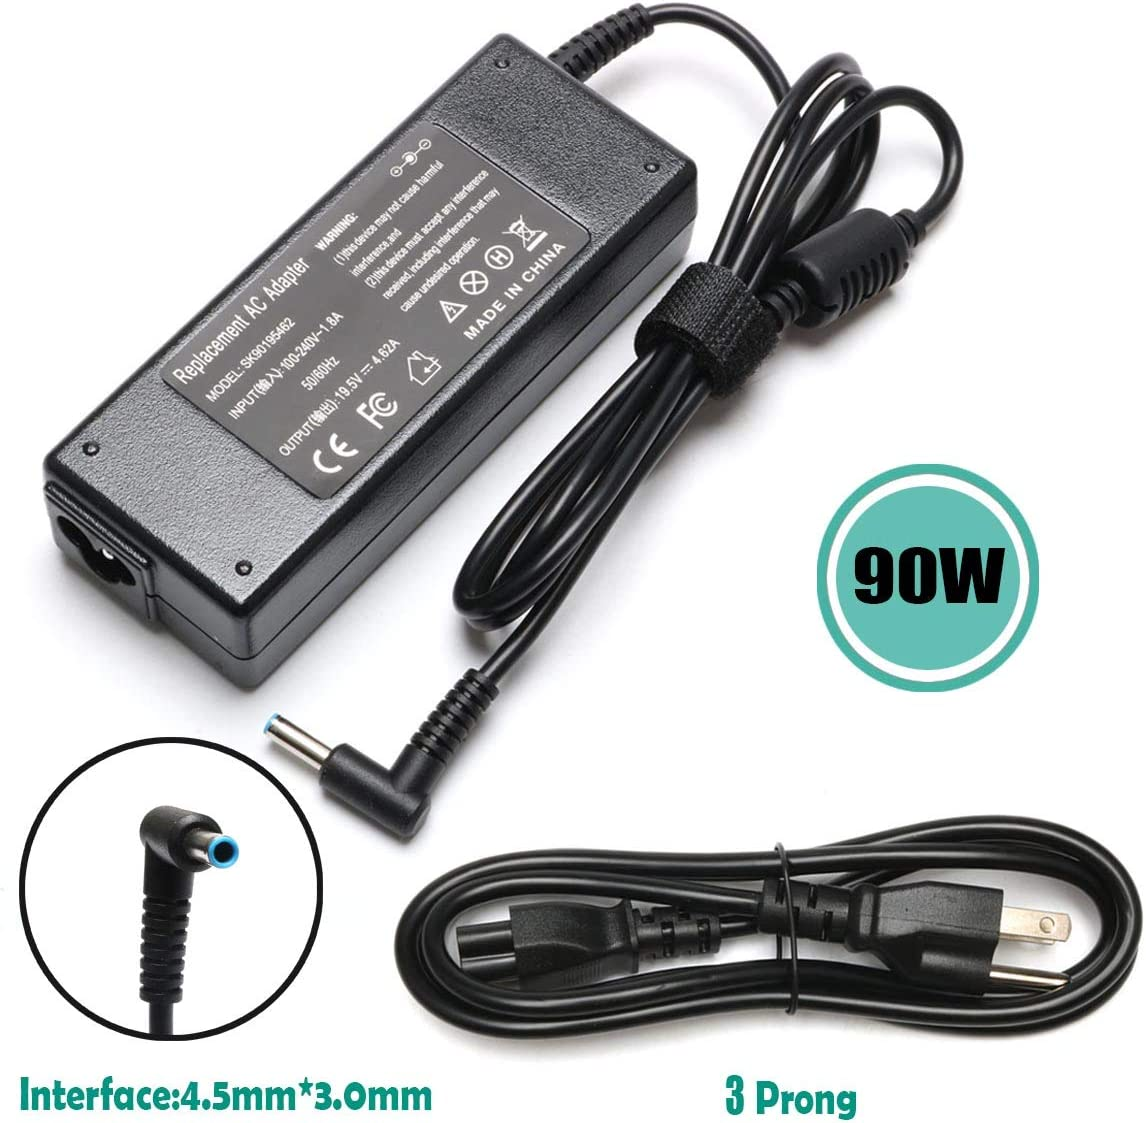 90W AC Adapter Laptop Charger for HP Pavilion 17 15 17-e110dx 17-e117dx 17-e118dx 17-e016dx 17-e119wm 17-e049wm 15-e043cl Envy 17 15 17-j153cl 17-j043cl 15-p214dx TouchSmart Power Supply Cord